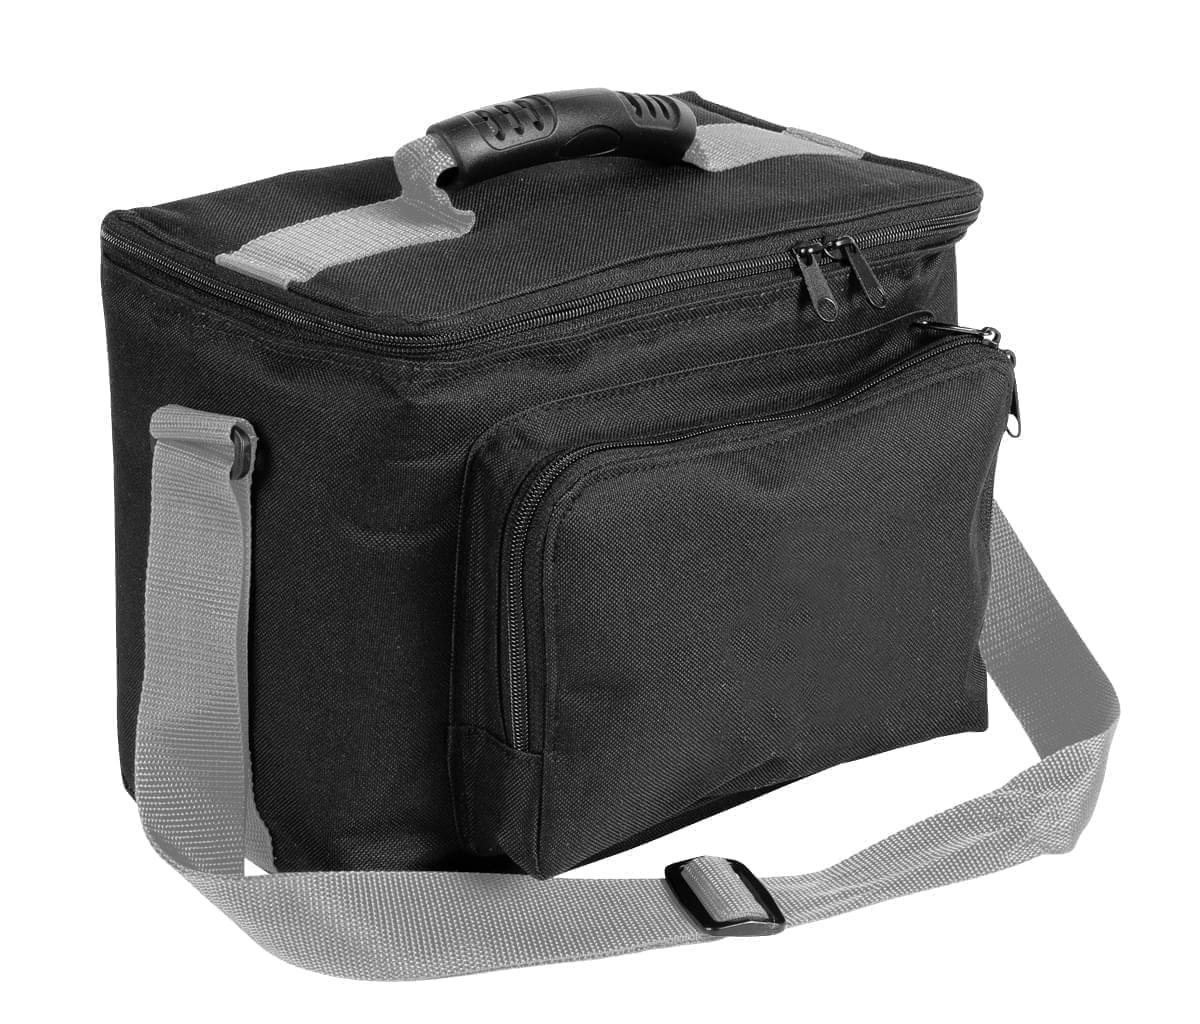 USA Made Nylon Poly Lunch Coolers, Black-Grey, 11001161-AOU